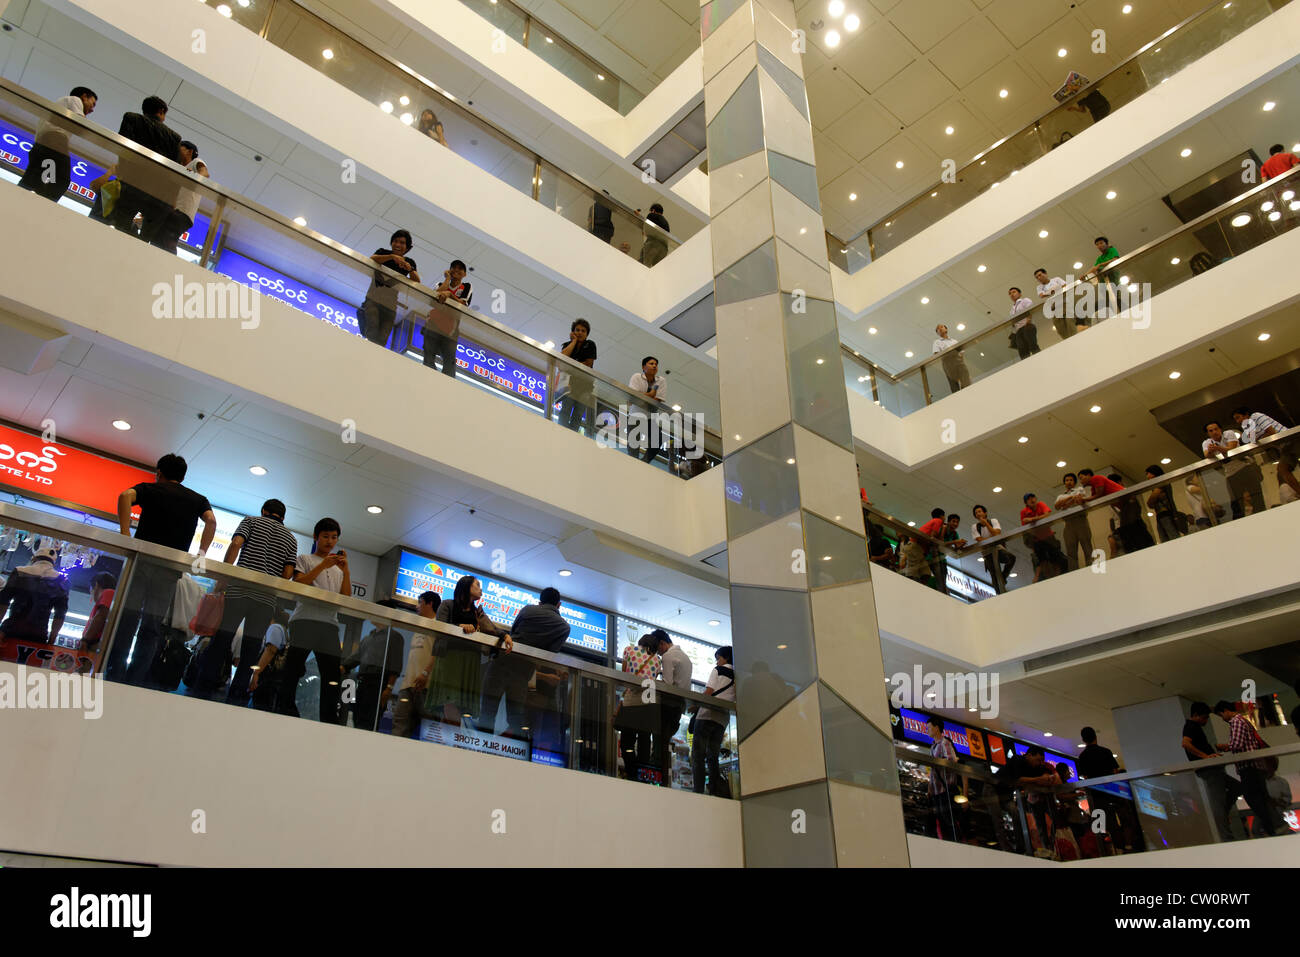 Filipinos gather in a Singapore shopping mall on Sunday afternoon - Stock Image